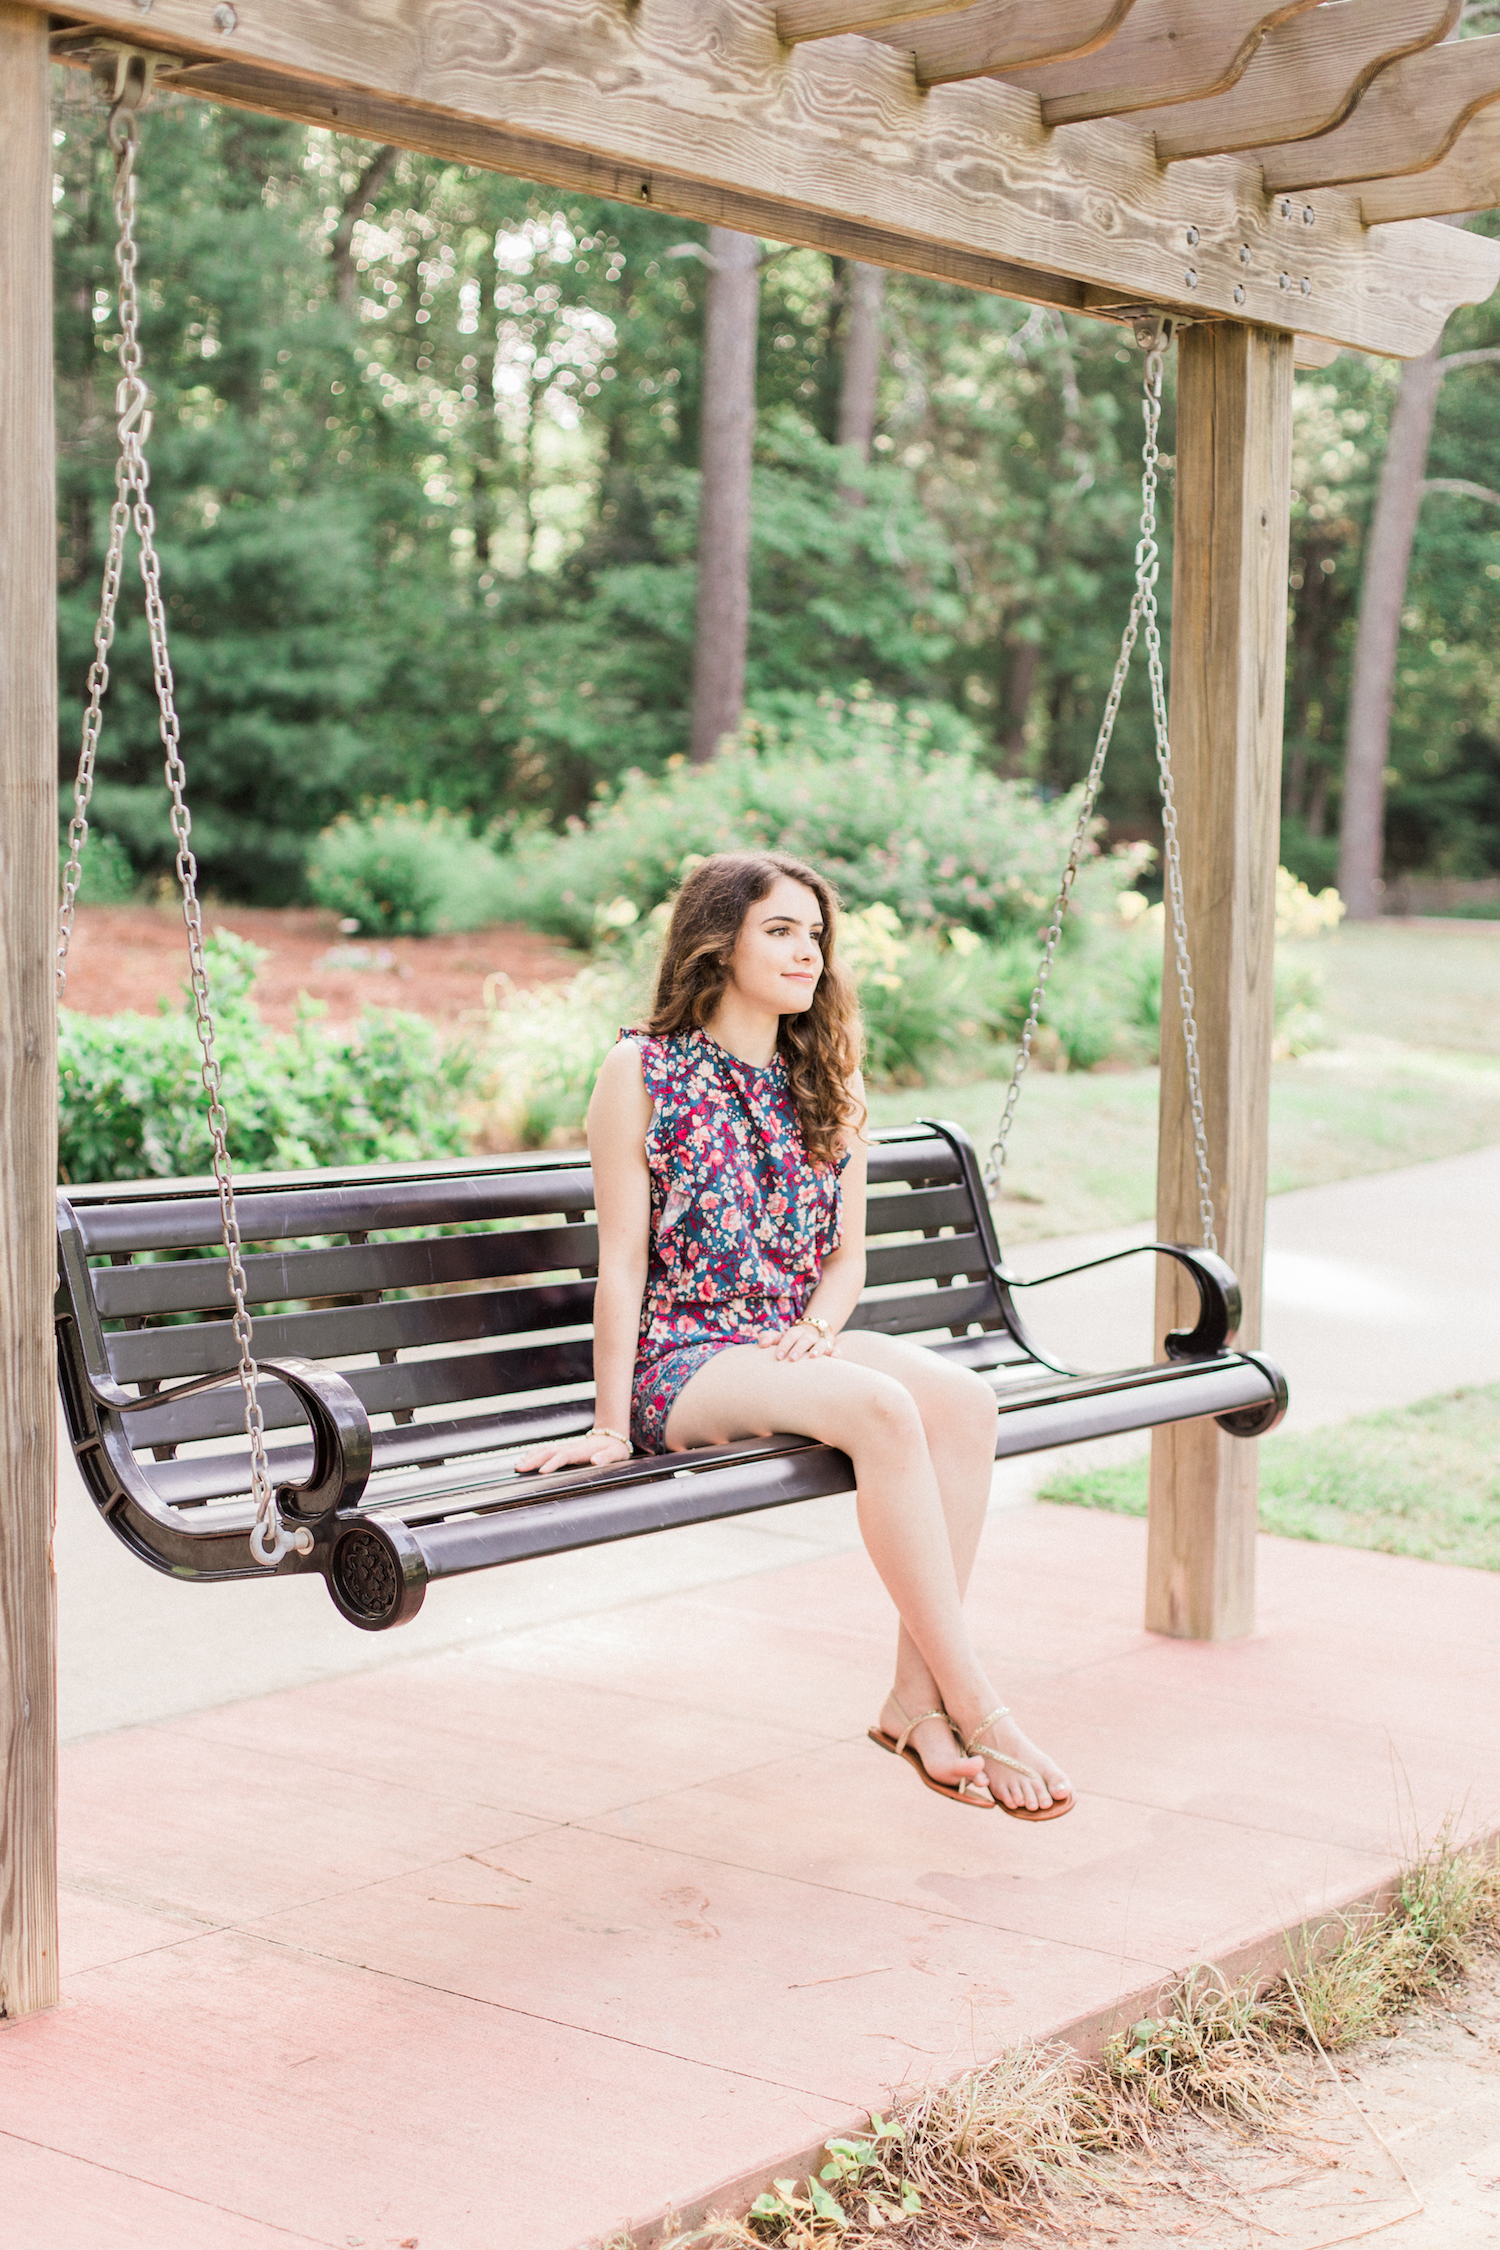 Summer time high school senior session at Vine Mansion Park by Kesia Marie Photography. Featuring feminine, garden details. Senior photos on a iron swing by a lake. Floral romper senior session style.